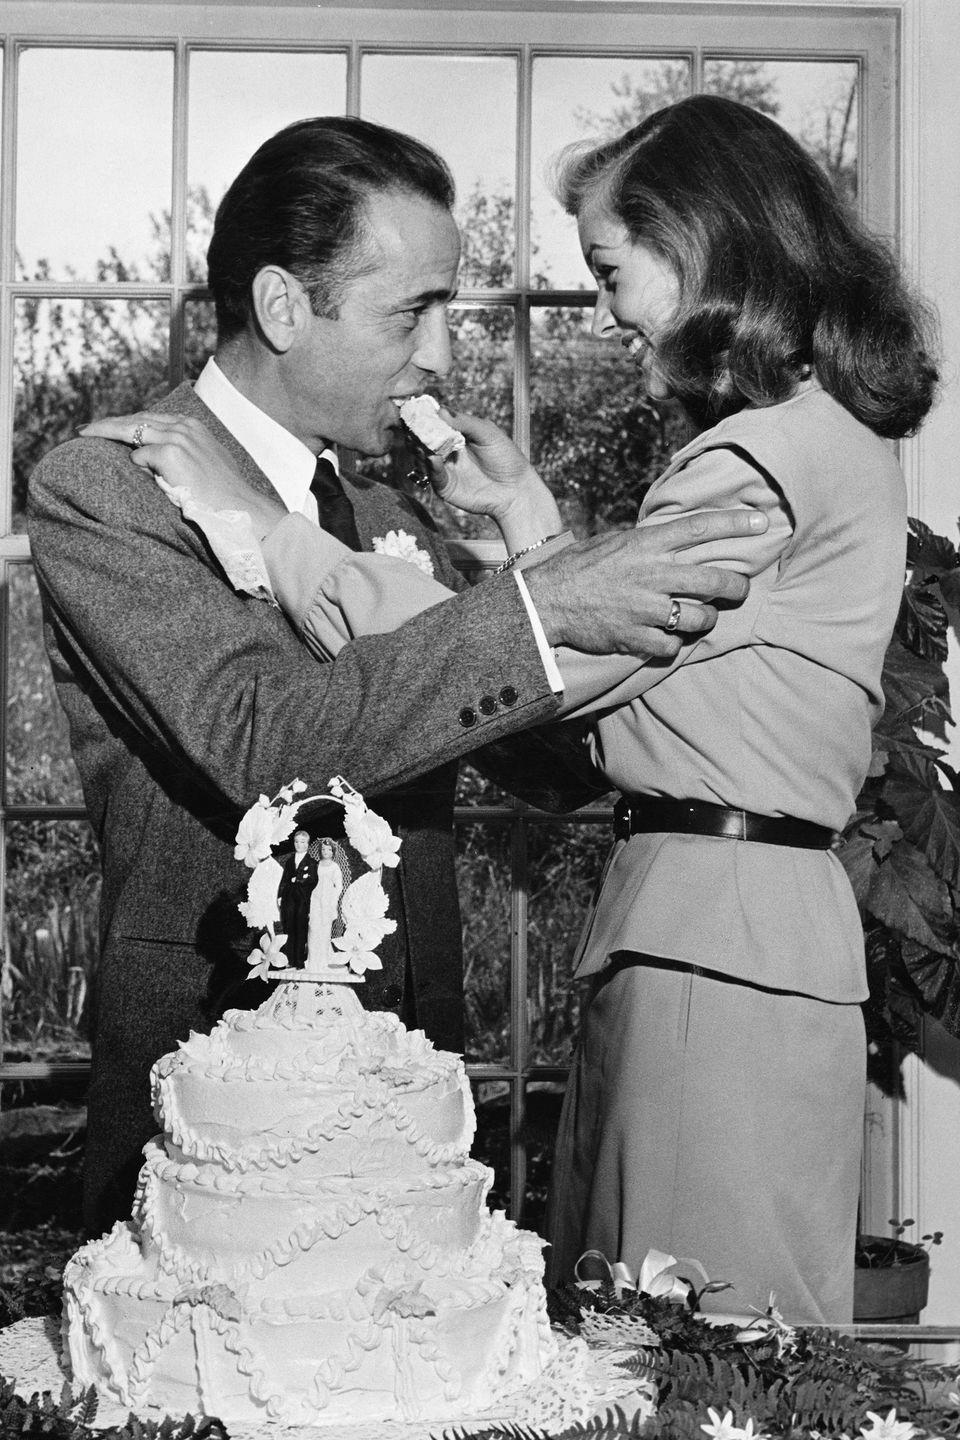 <p>When Humphrey Bogart fell in love with Lauren Bacall on the set of <em>To Have and Have Not</em>, he was 25 years older than his costar—not to mention married at the time. Their affair blossomed into one of Hollywood's most legendary romances and in 1945 the couple got married on the farm of Bogart's friend and Pulitzer Prize winner, Louis Bromfield, in Lucas, Ohio. </p>